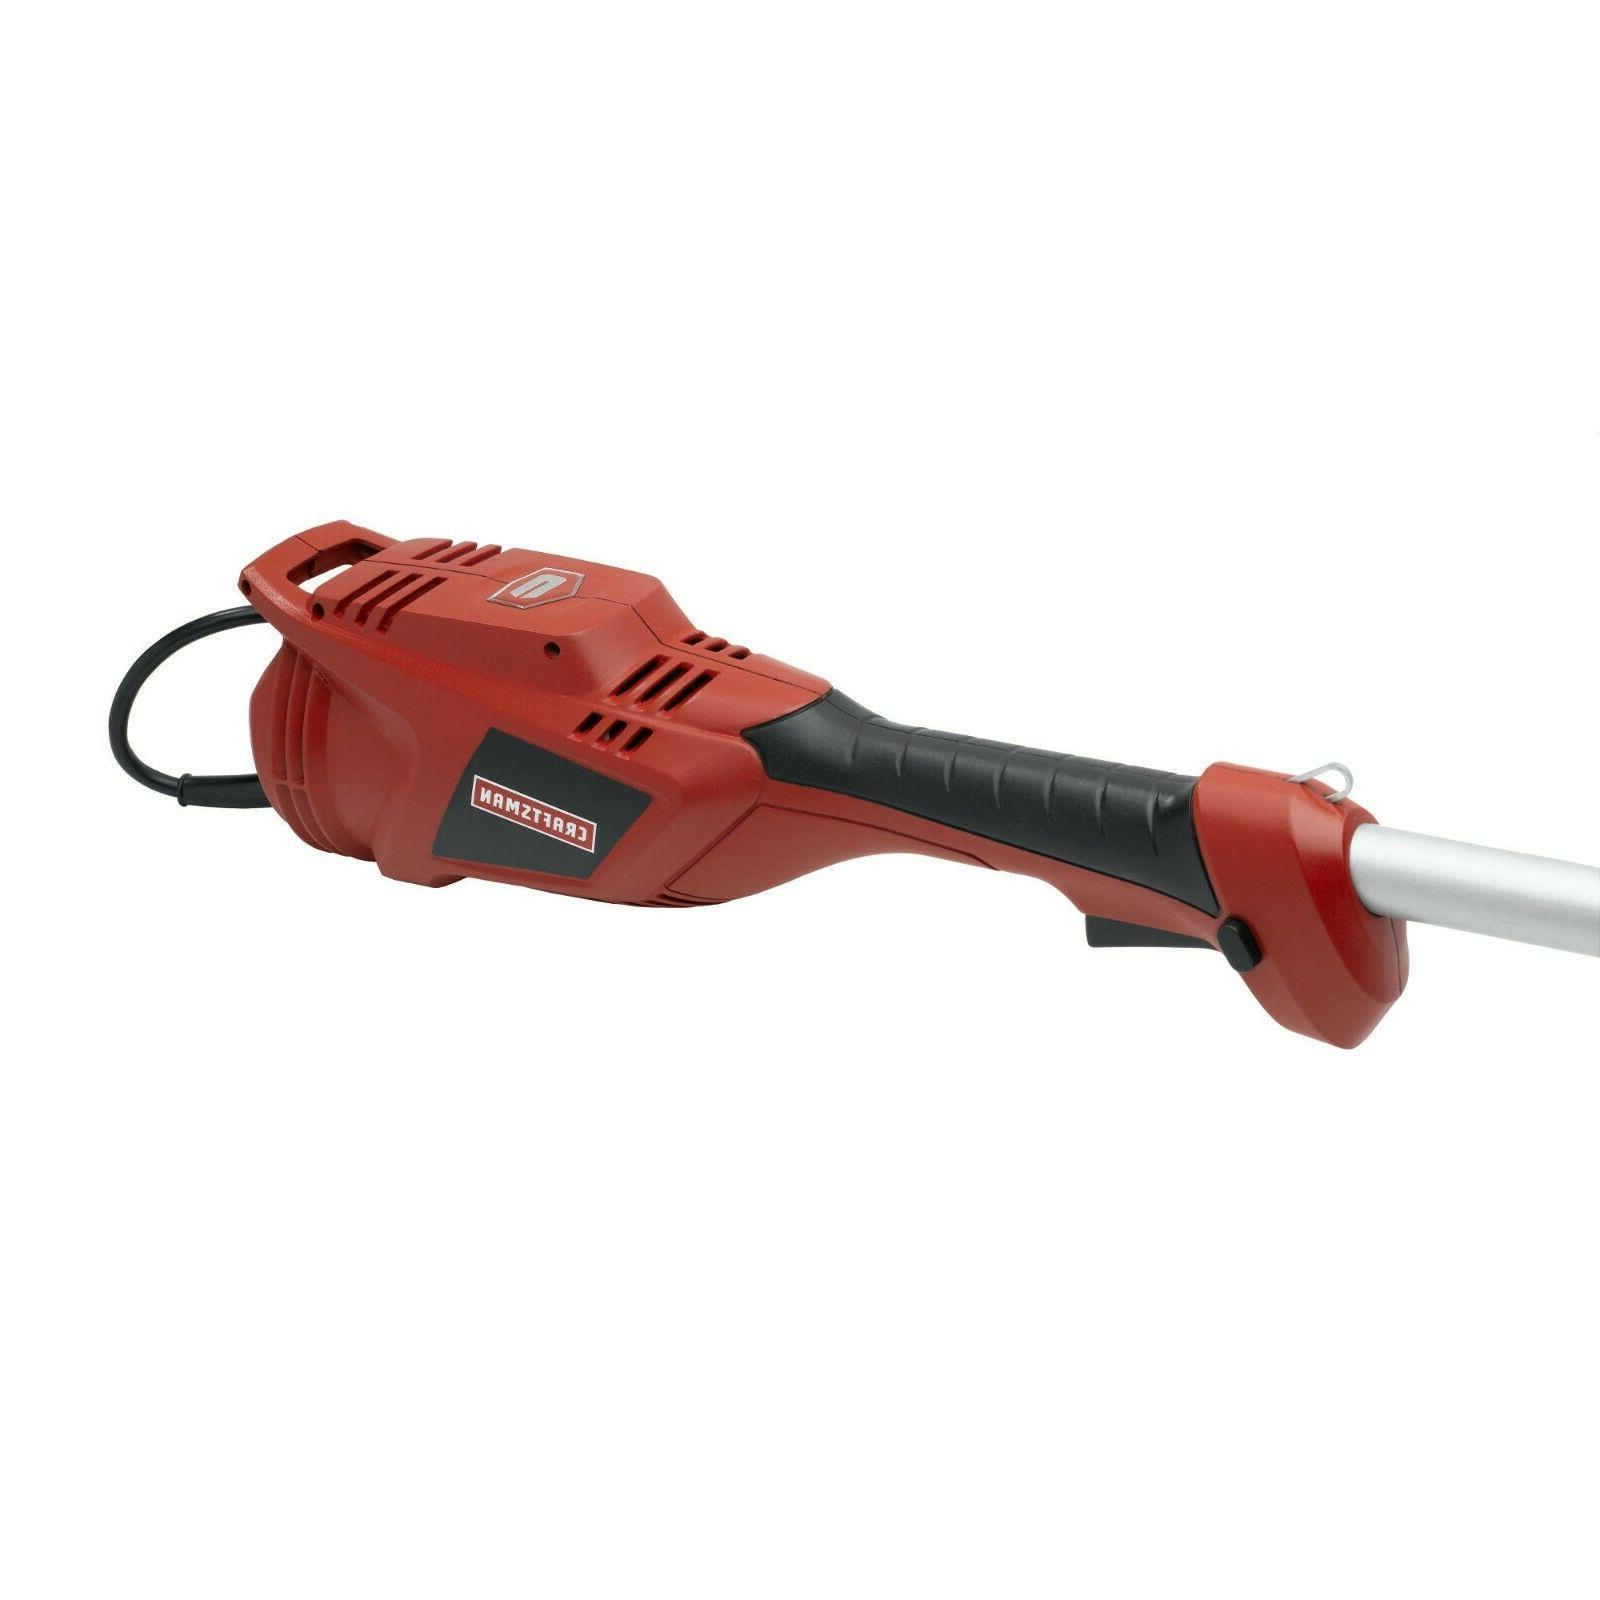 Craftsman 16 Inch Corded Line Trimmer Lines NEW